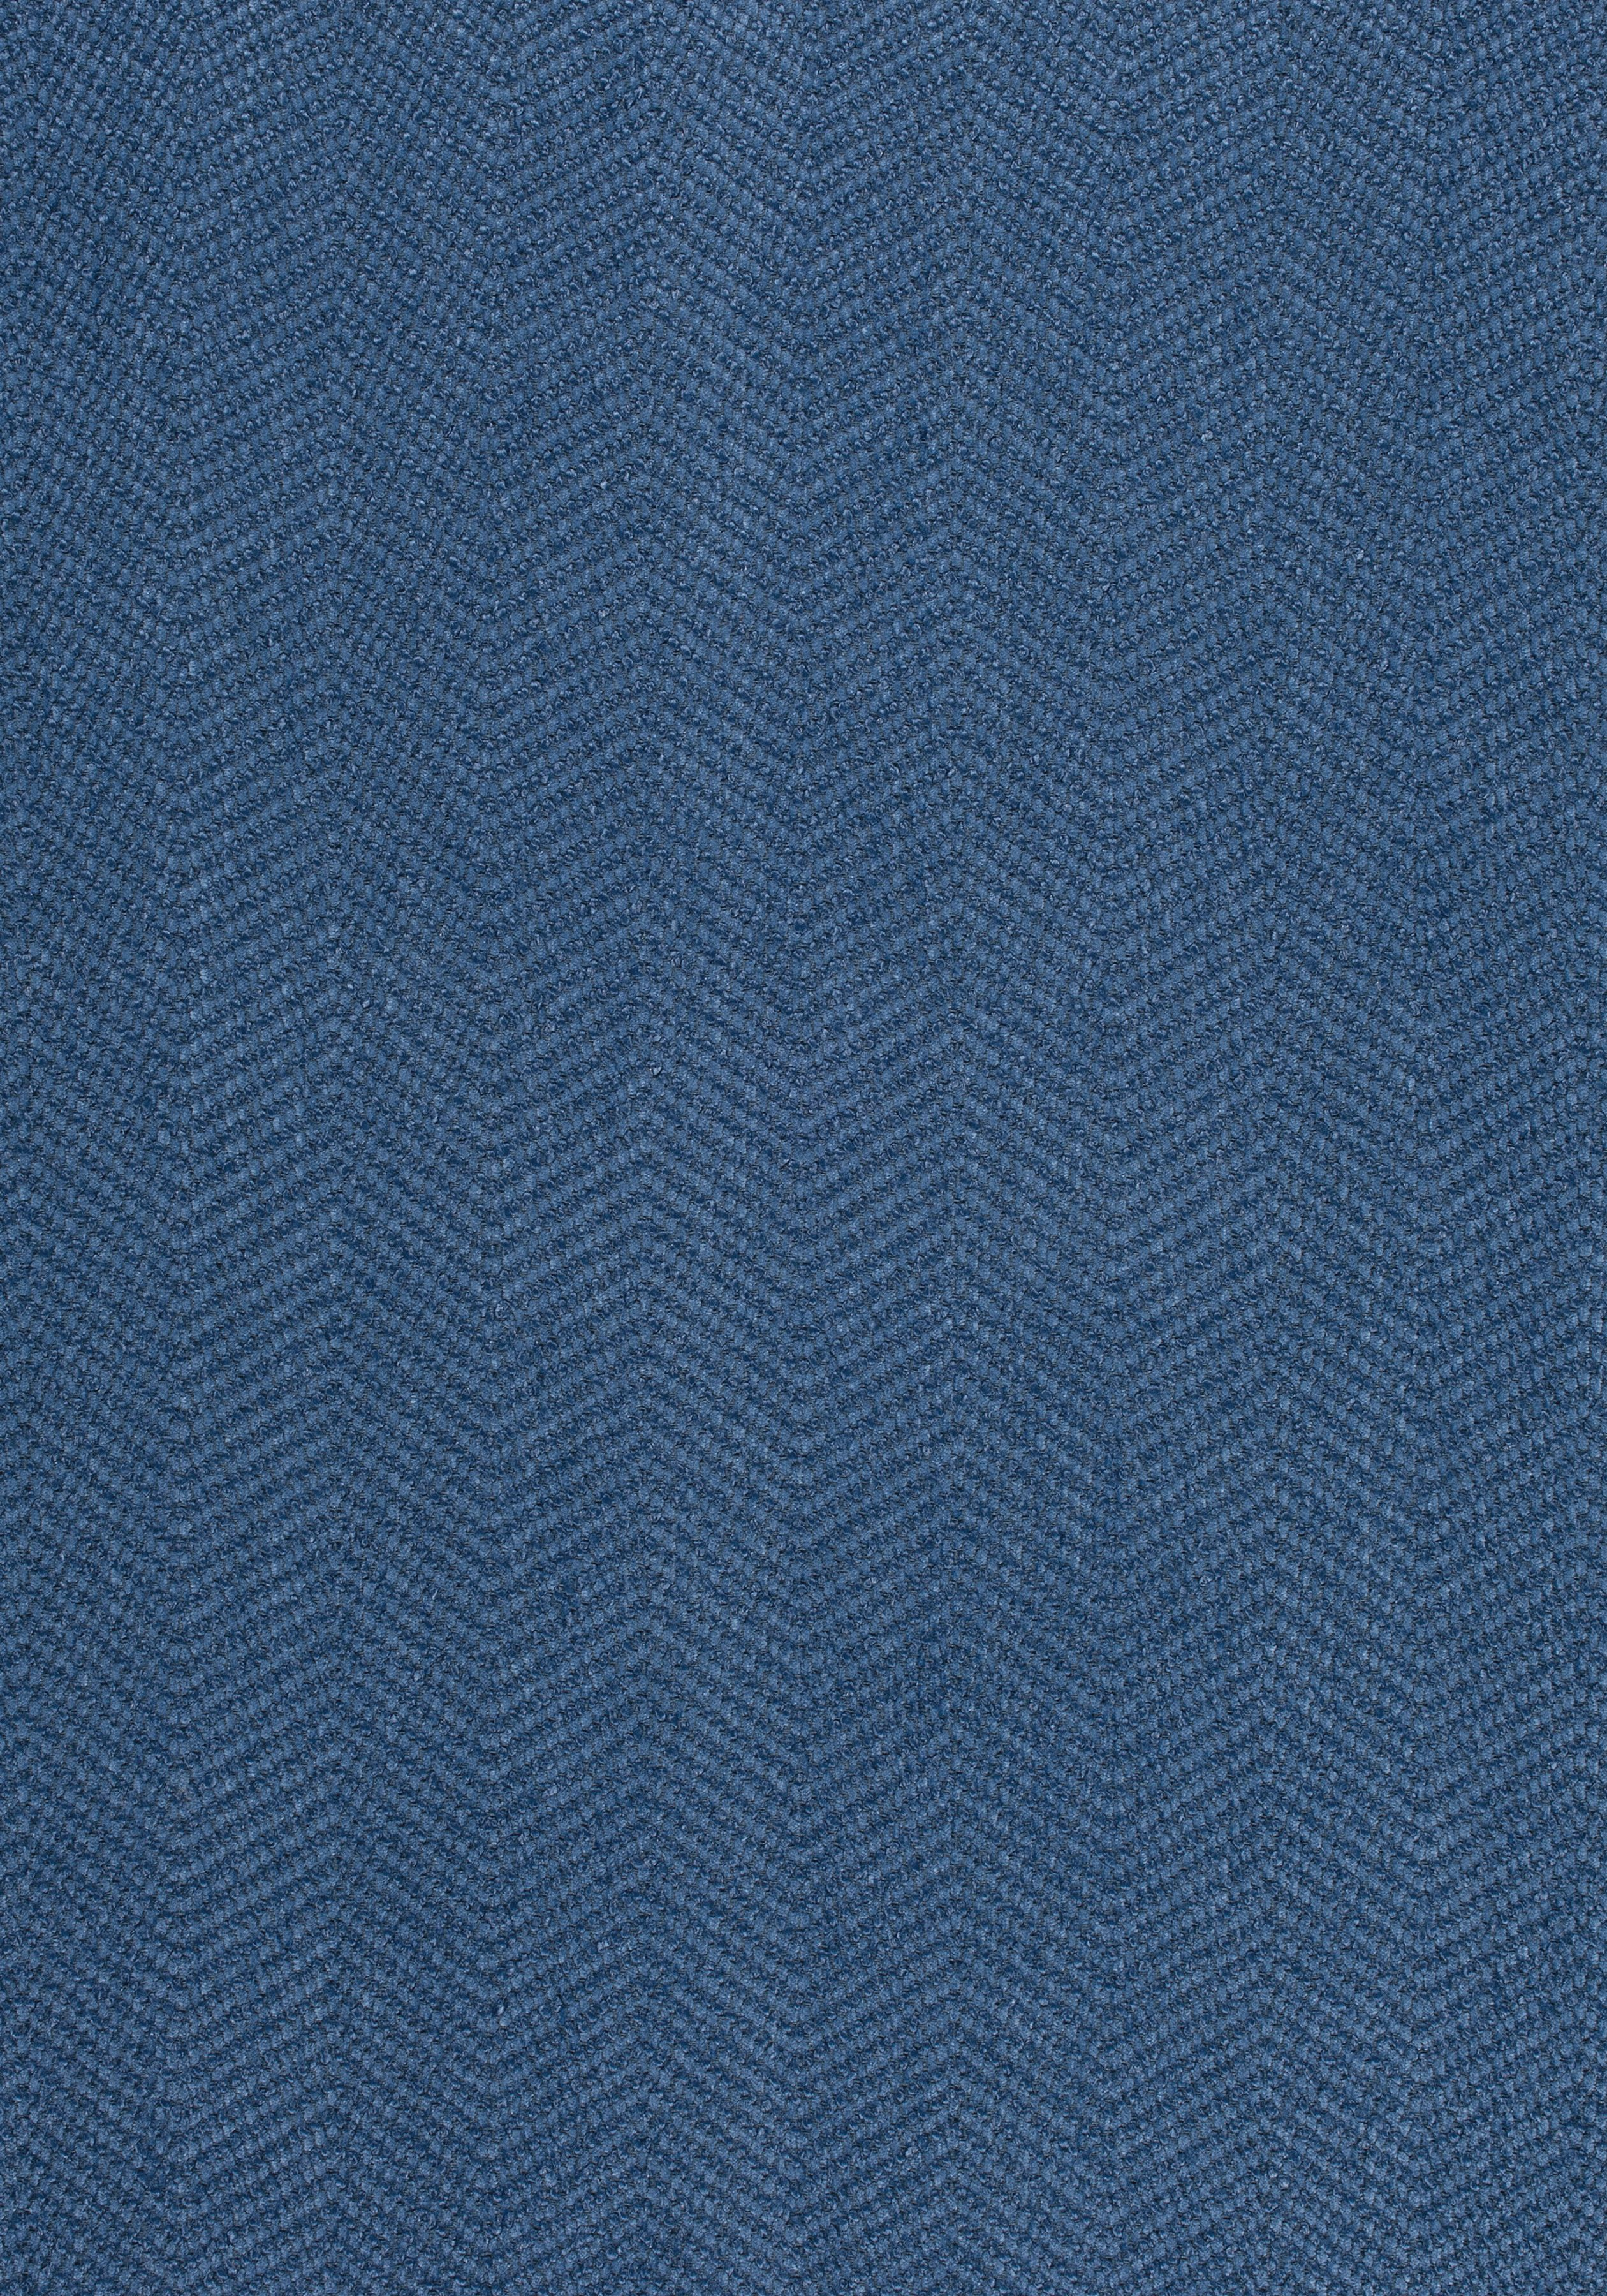 Dalton Herringbone Royal Blue W80629 Collection Pinnacle From Thibaut Blue Fabric Texture Fabric Textures Material Textures